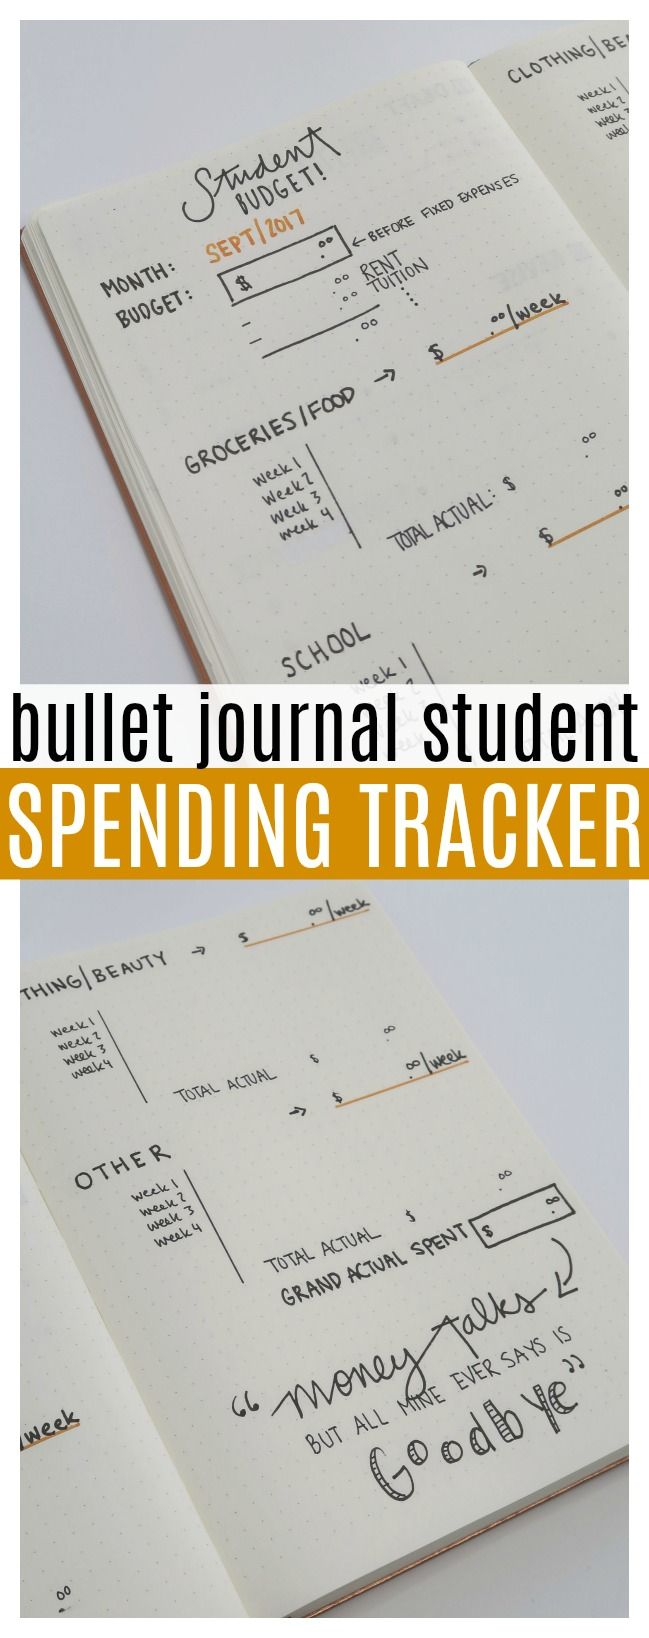 Bullet Journal STUDENT SPENDING TRACKER!